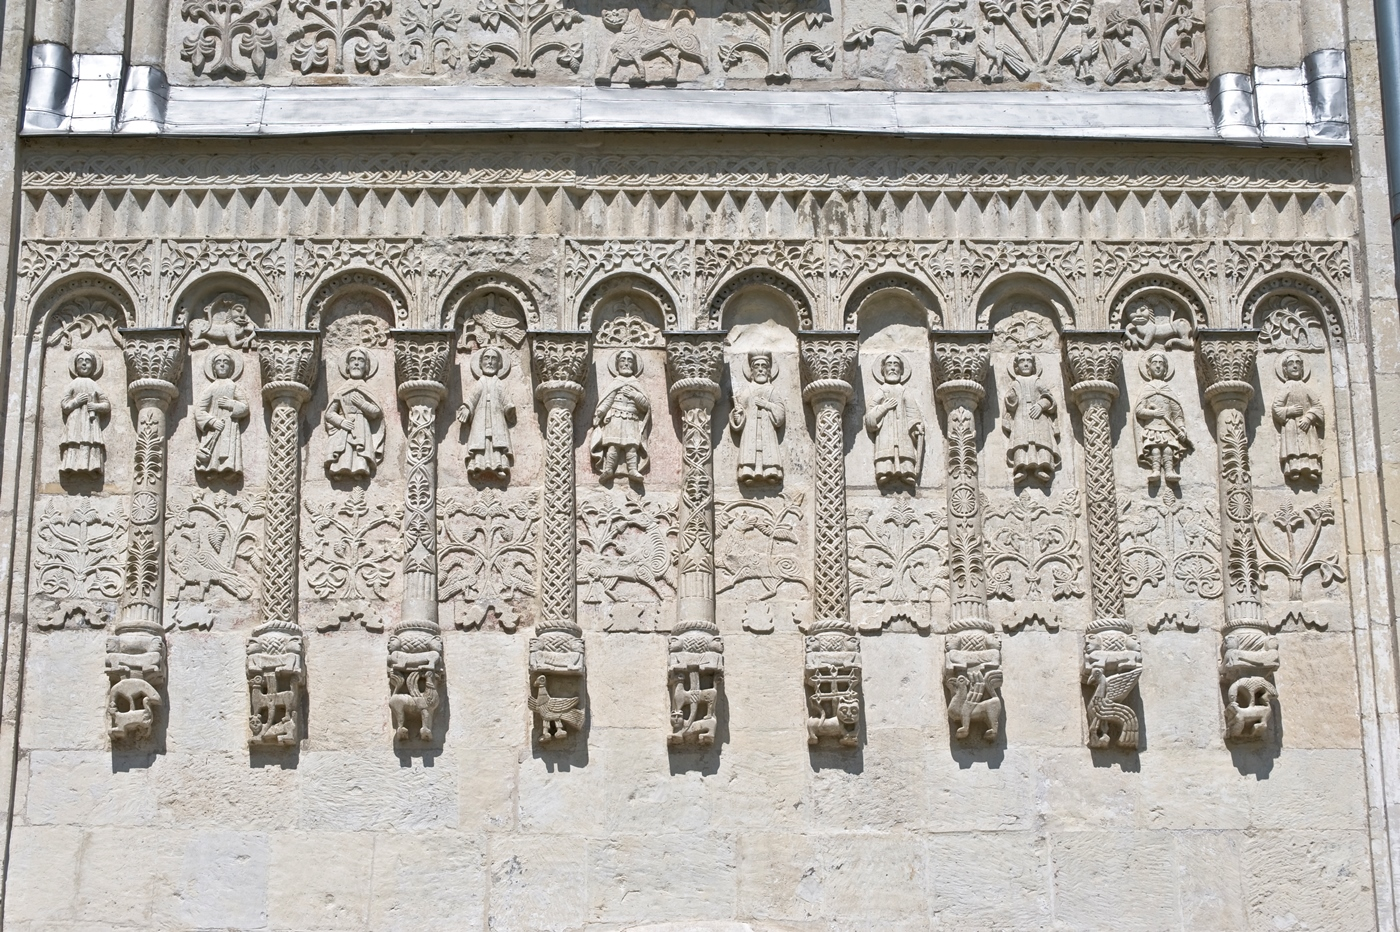 Vladimir. Cathedral of St. Dmitry. Arcade frieze at center of south facade. July 18, 2009. / Photo: William Brumfield